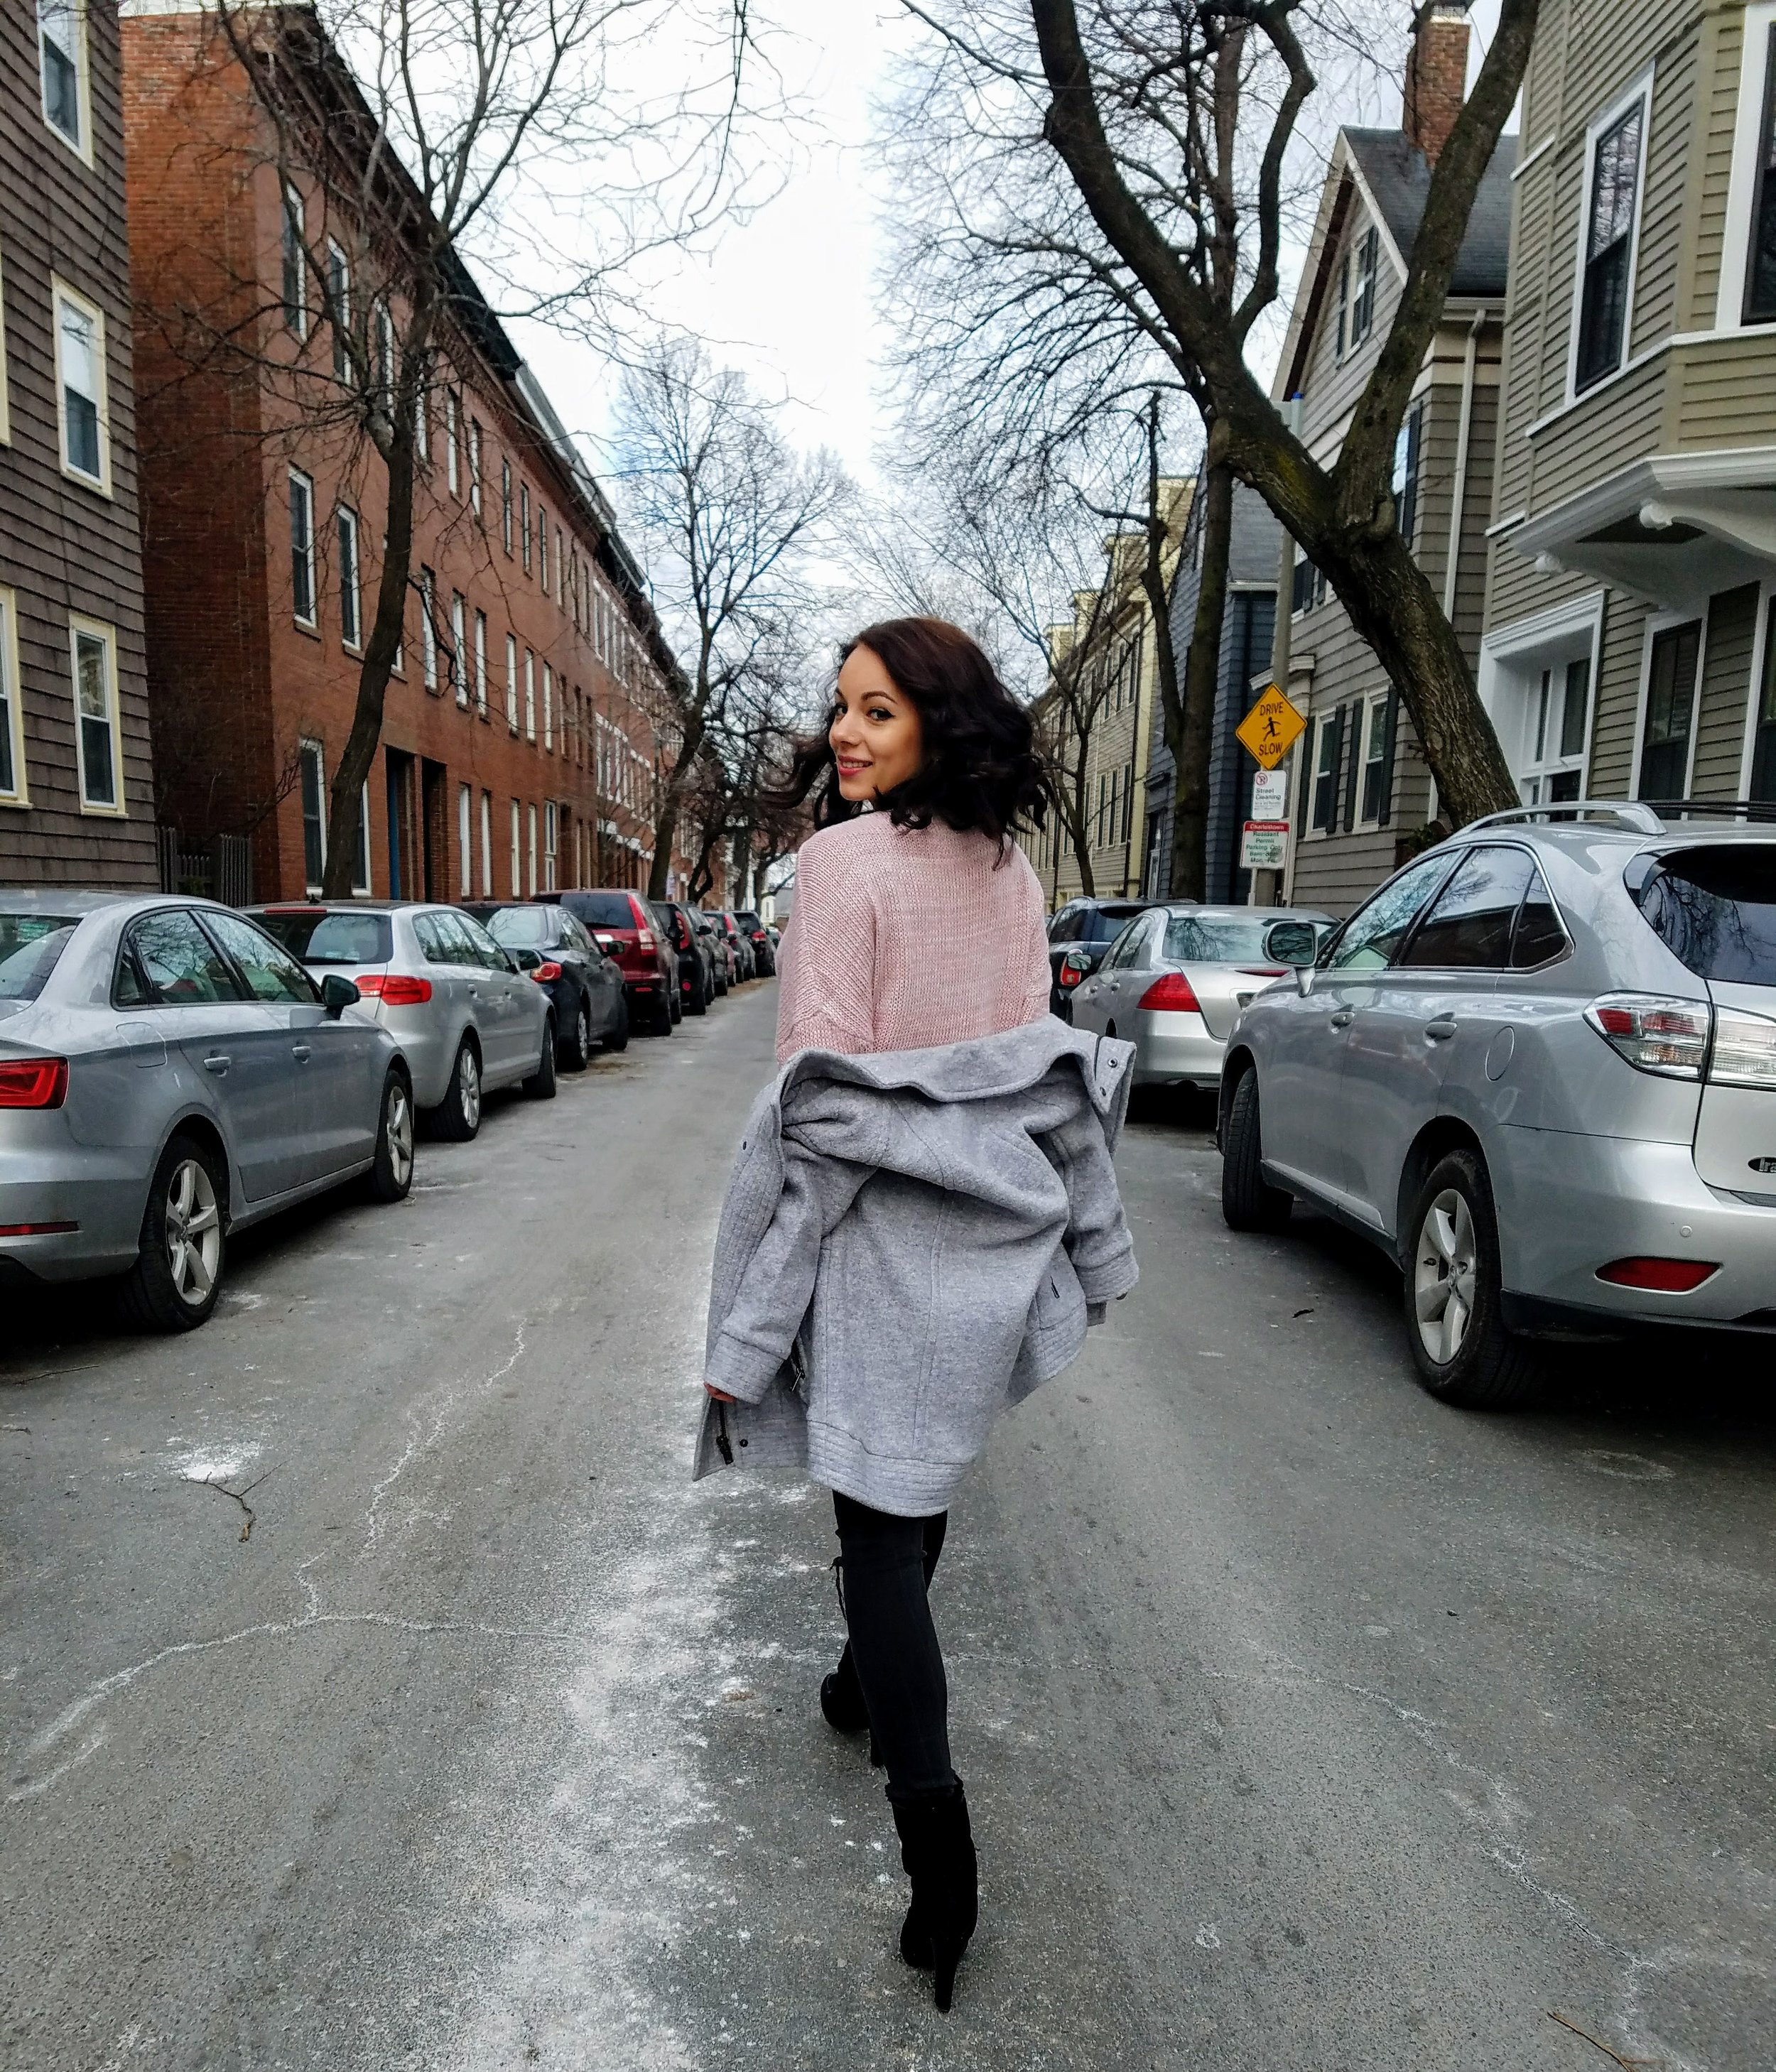 A girl in Boston. Blogger. Pink sweater, gray jacket, ripped jeans, and black booties. Valentine's day.